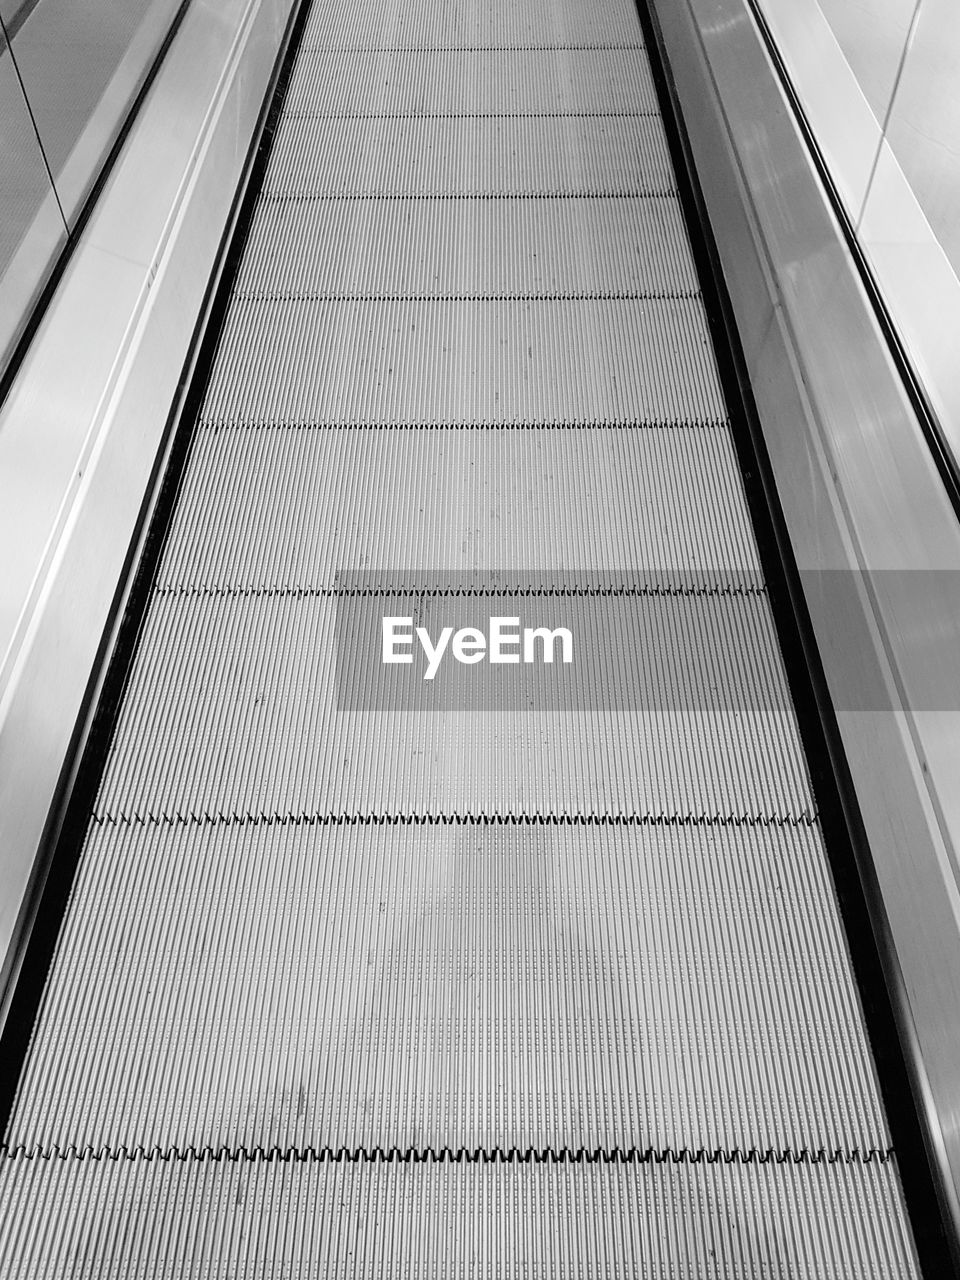 architecture, direction, the way forward, railing, transportation, escalator, no people, high angle view, convenience, metal, indoors, moving walkway, pattern, modern, built structure, day, technology, futuristic